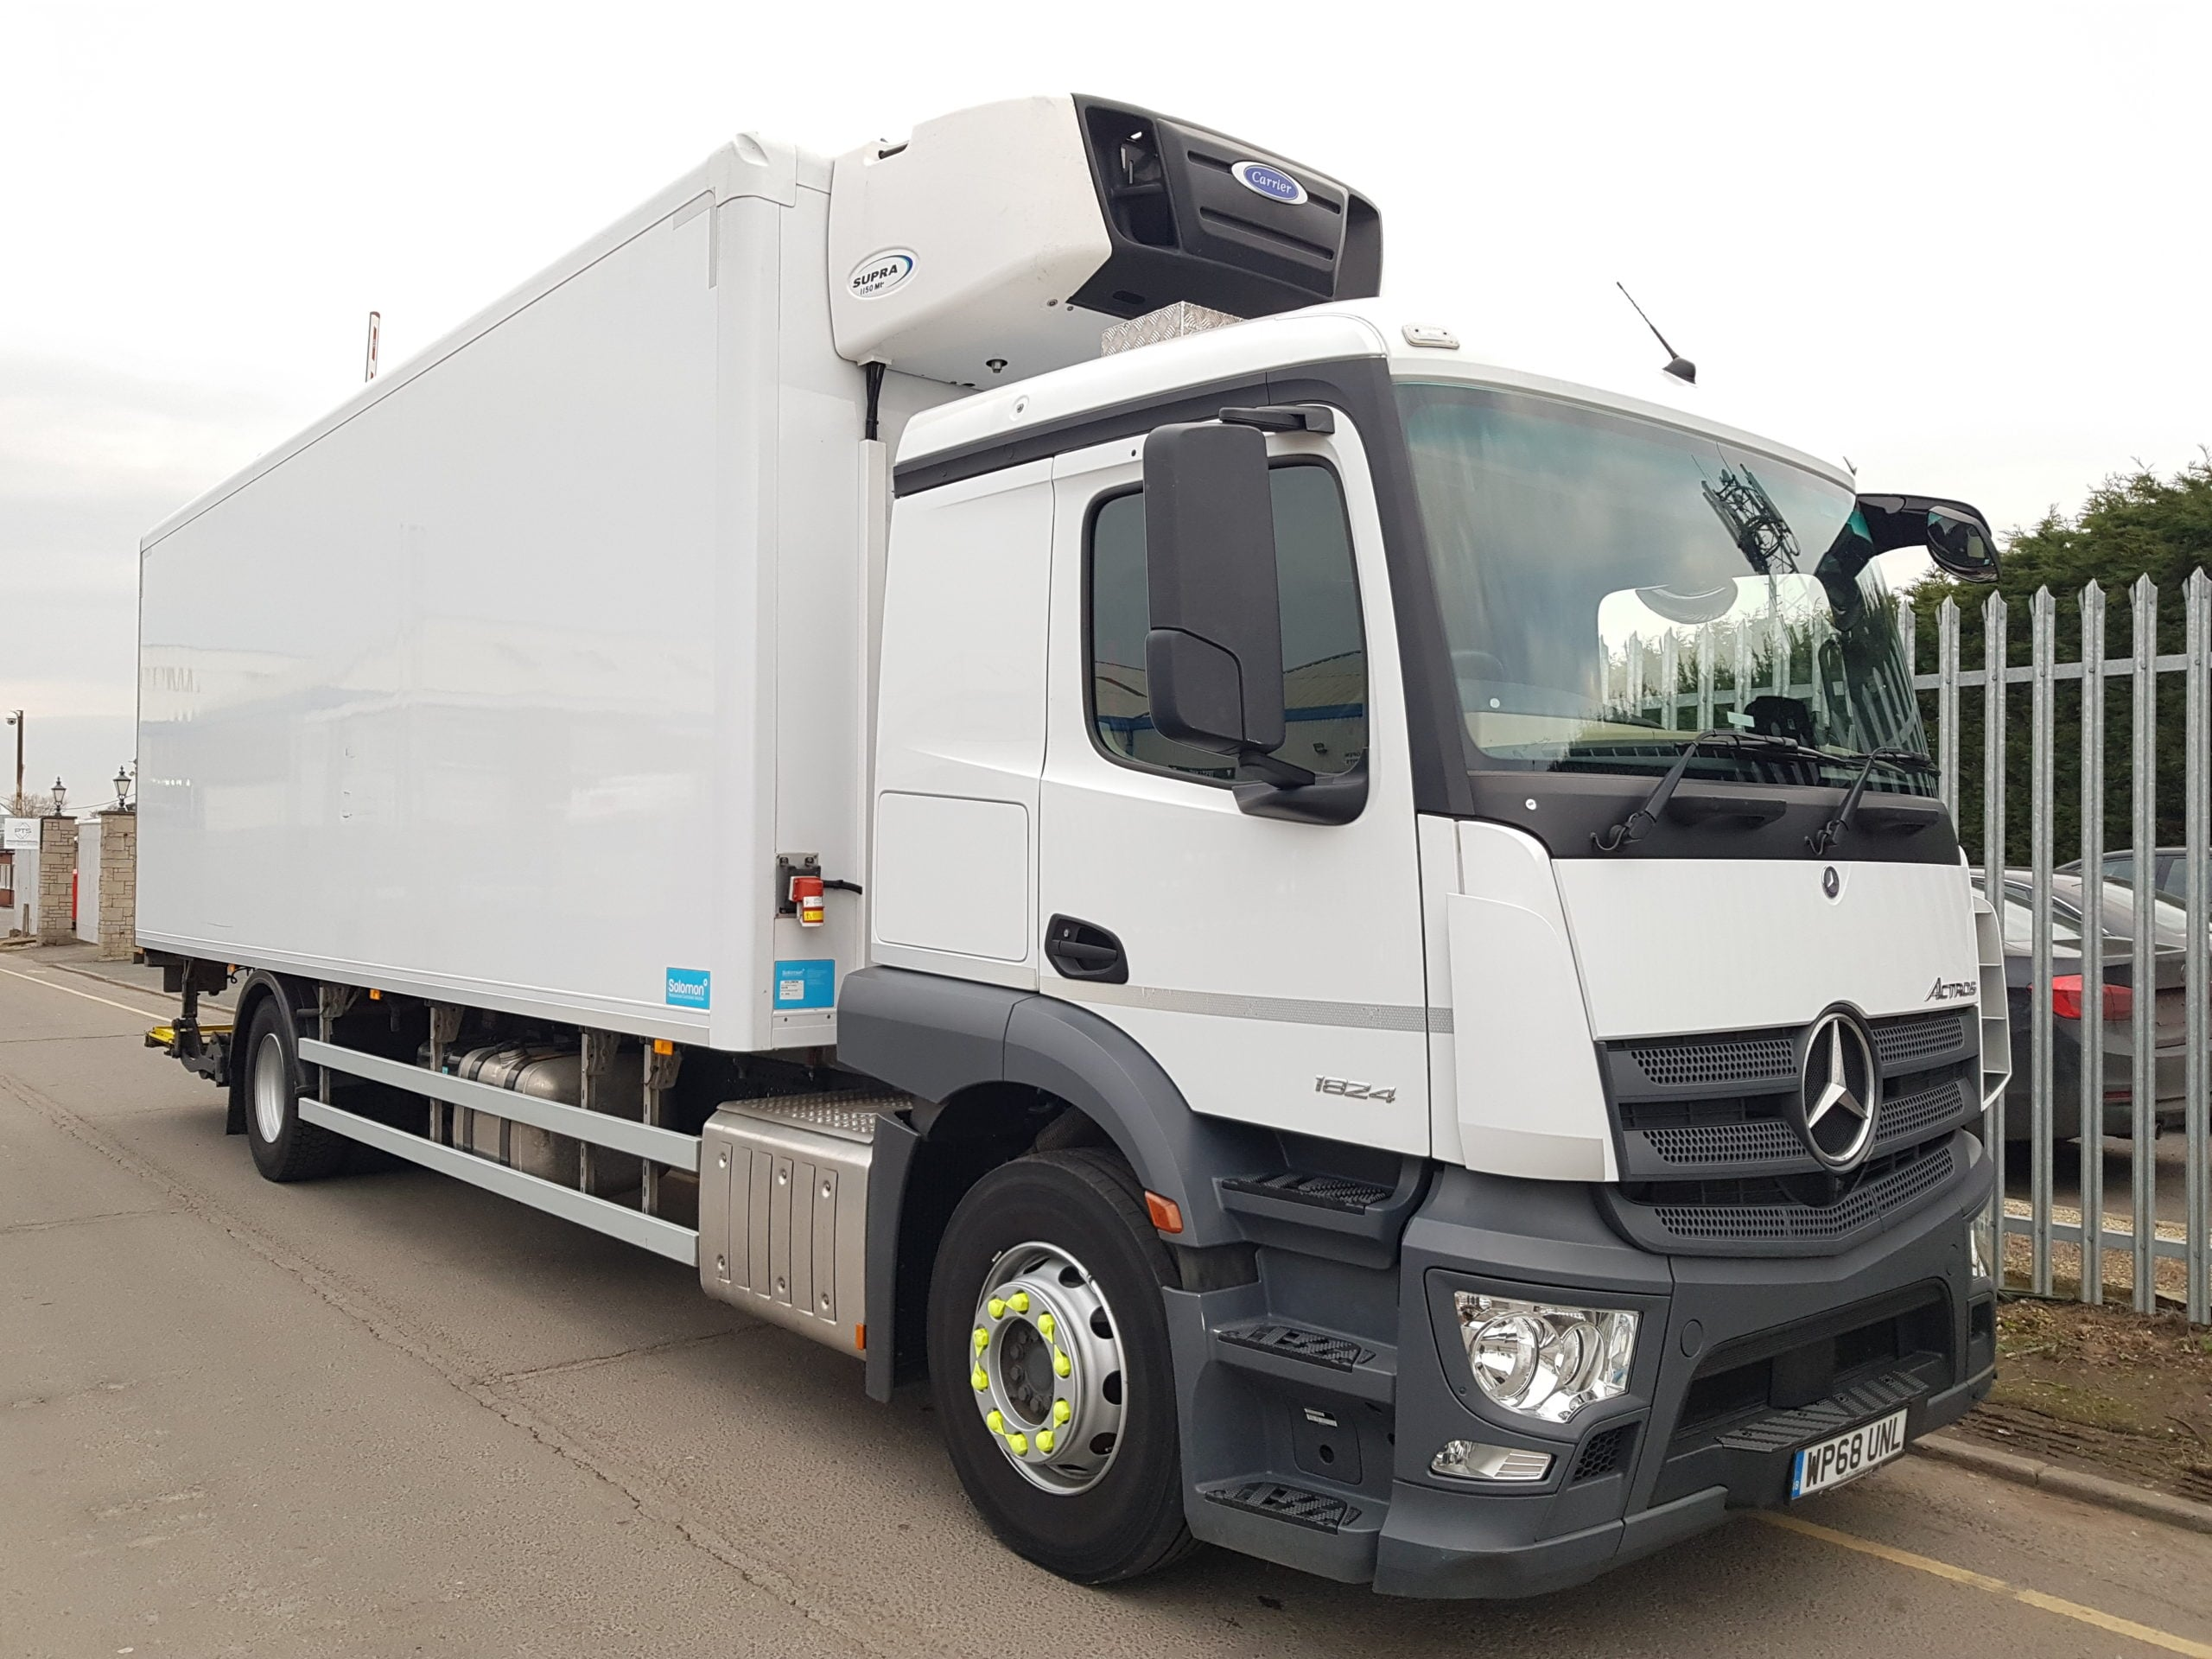 2019 (68) Mercedes Actros 1824 Fridge. 18 Tonne, Euro 6, Automatic Gearbox, 240bhp, Dhollandia Tuckunder Tailift (2000KG Capacity), 8.2m Body, Carrier Supra 1150Mt Fridge Engine, Roller Shutter Door, Aluminium Floor, Very Low Mileage at 32,434km. Warranty Available.